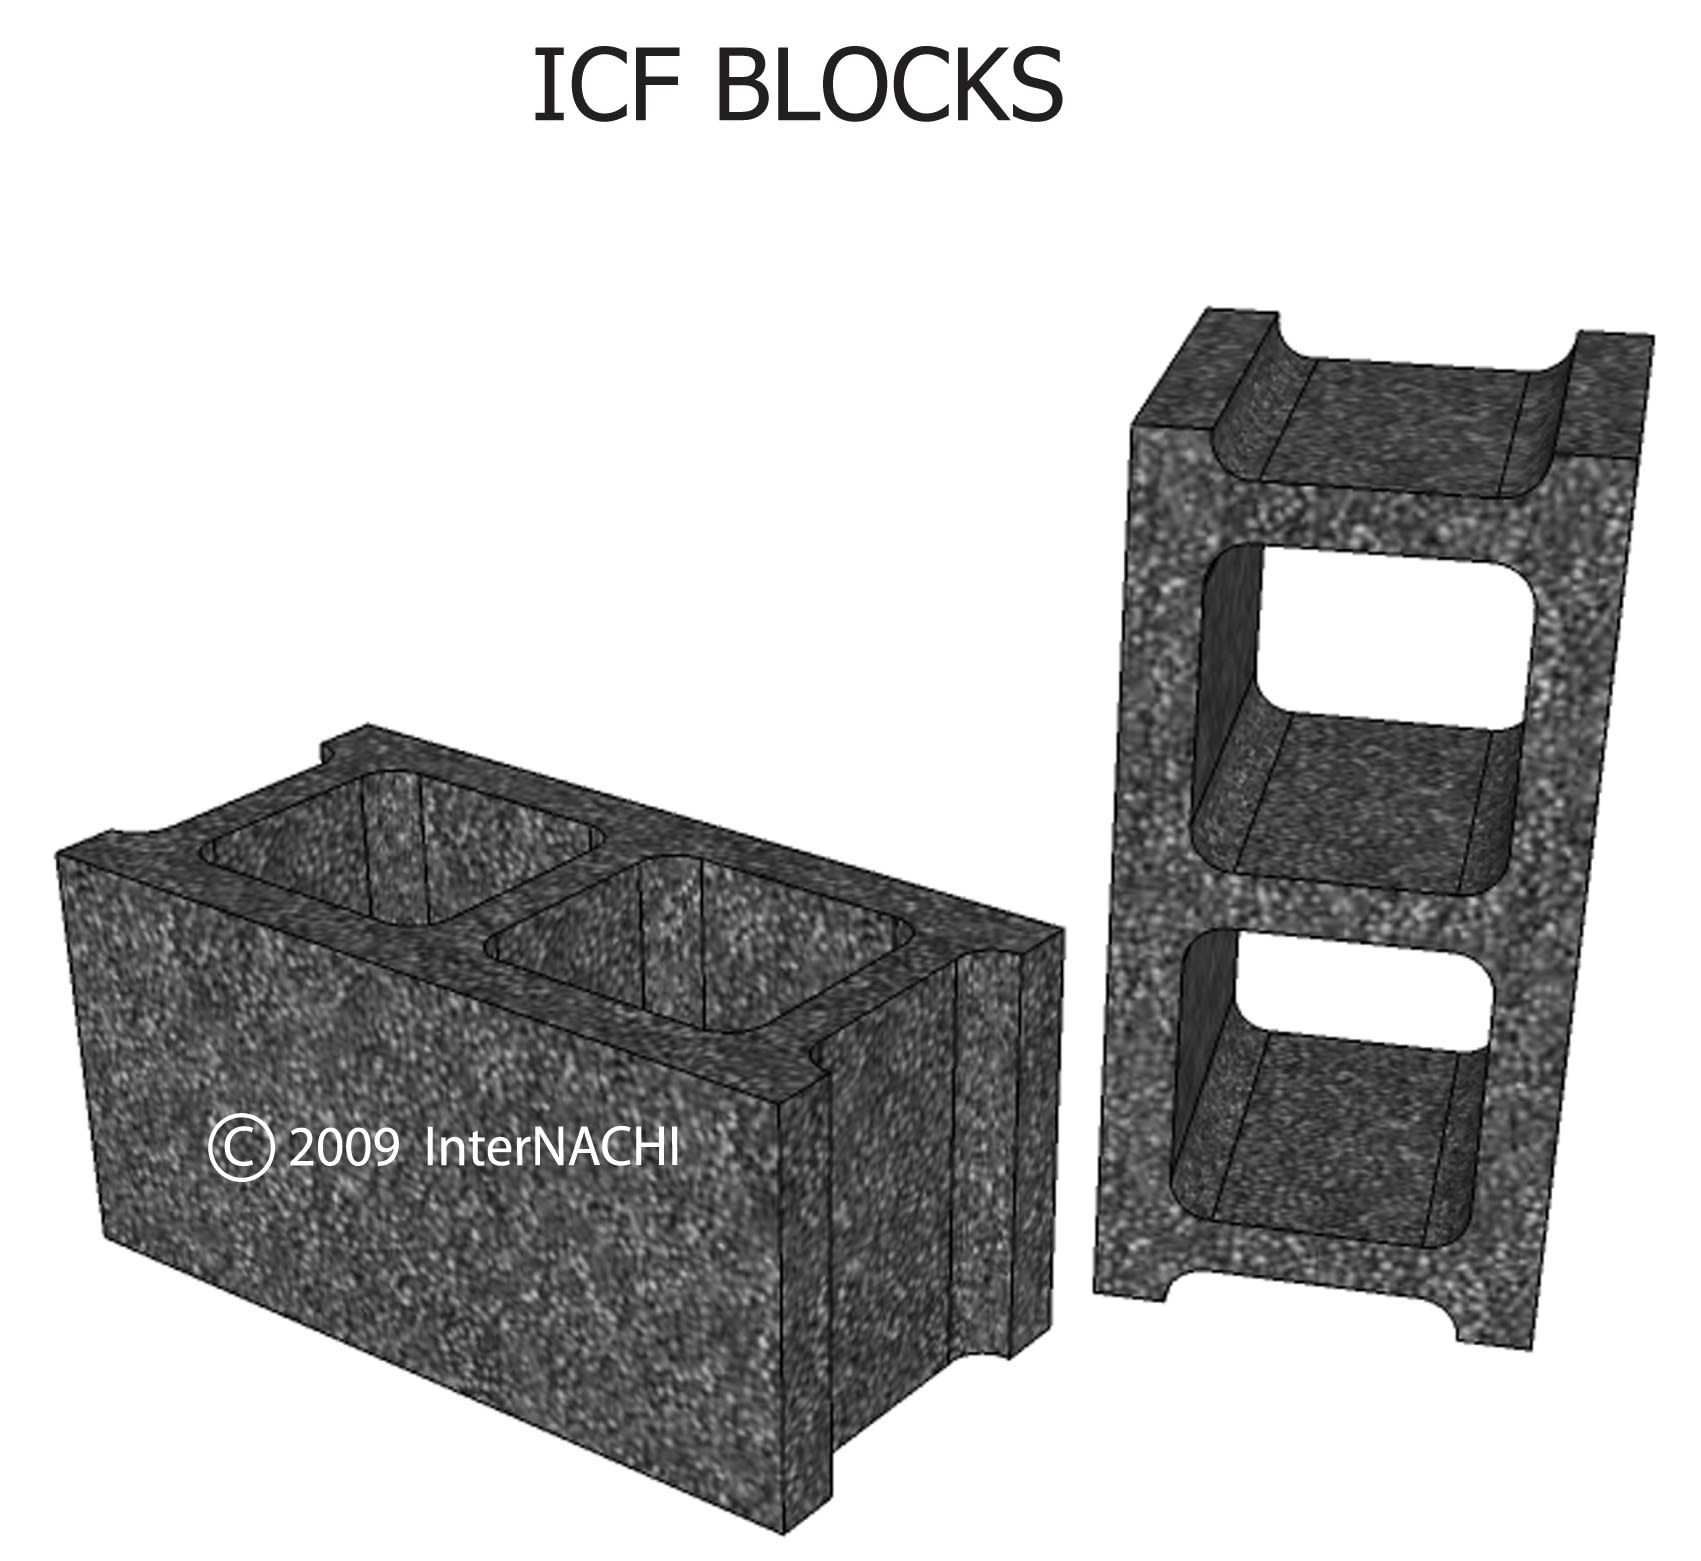 Index of gallery images insulation and energy foundation for Icf block